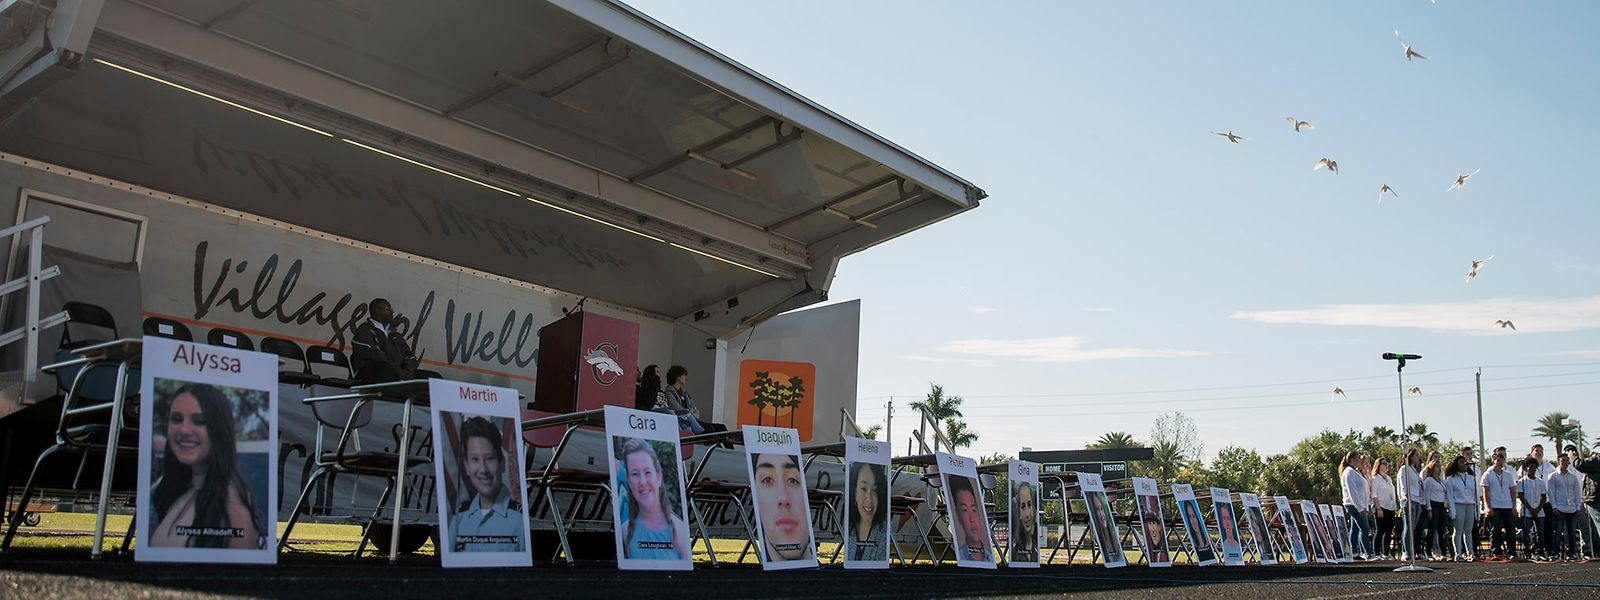 Fotos der 17 Todesopfer des Amoklaufs in Parkland im Stadion der High School in Wellington, Florida.